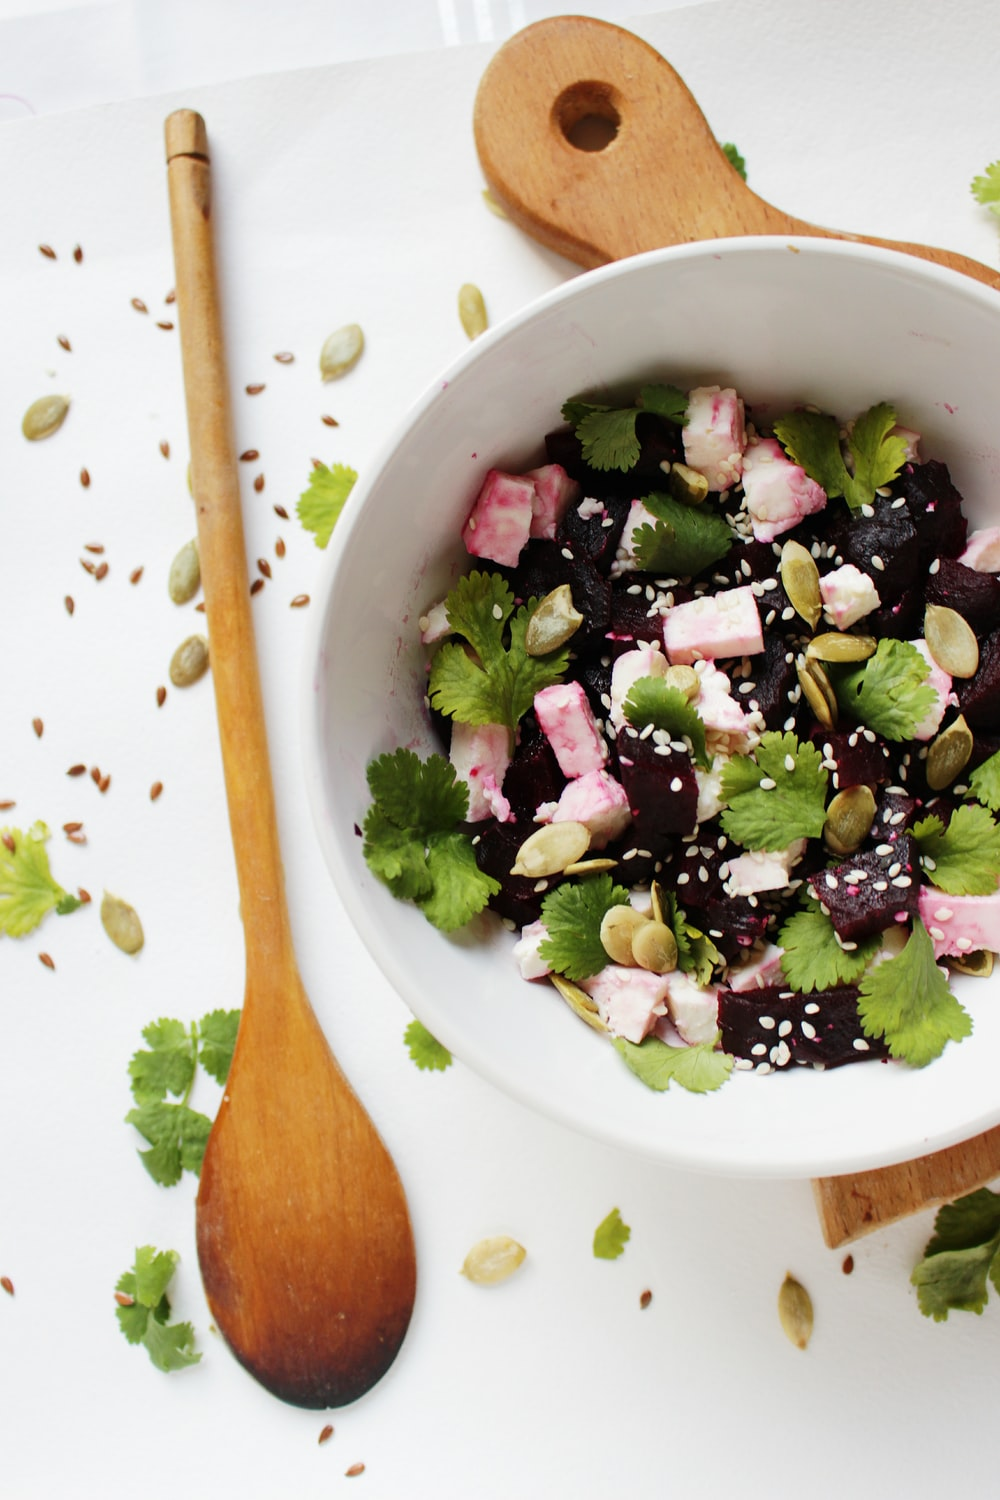 vegetable salad topped with sesame seeds in round white ceramic bowl beside brown wooden ladle